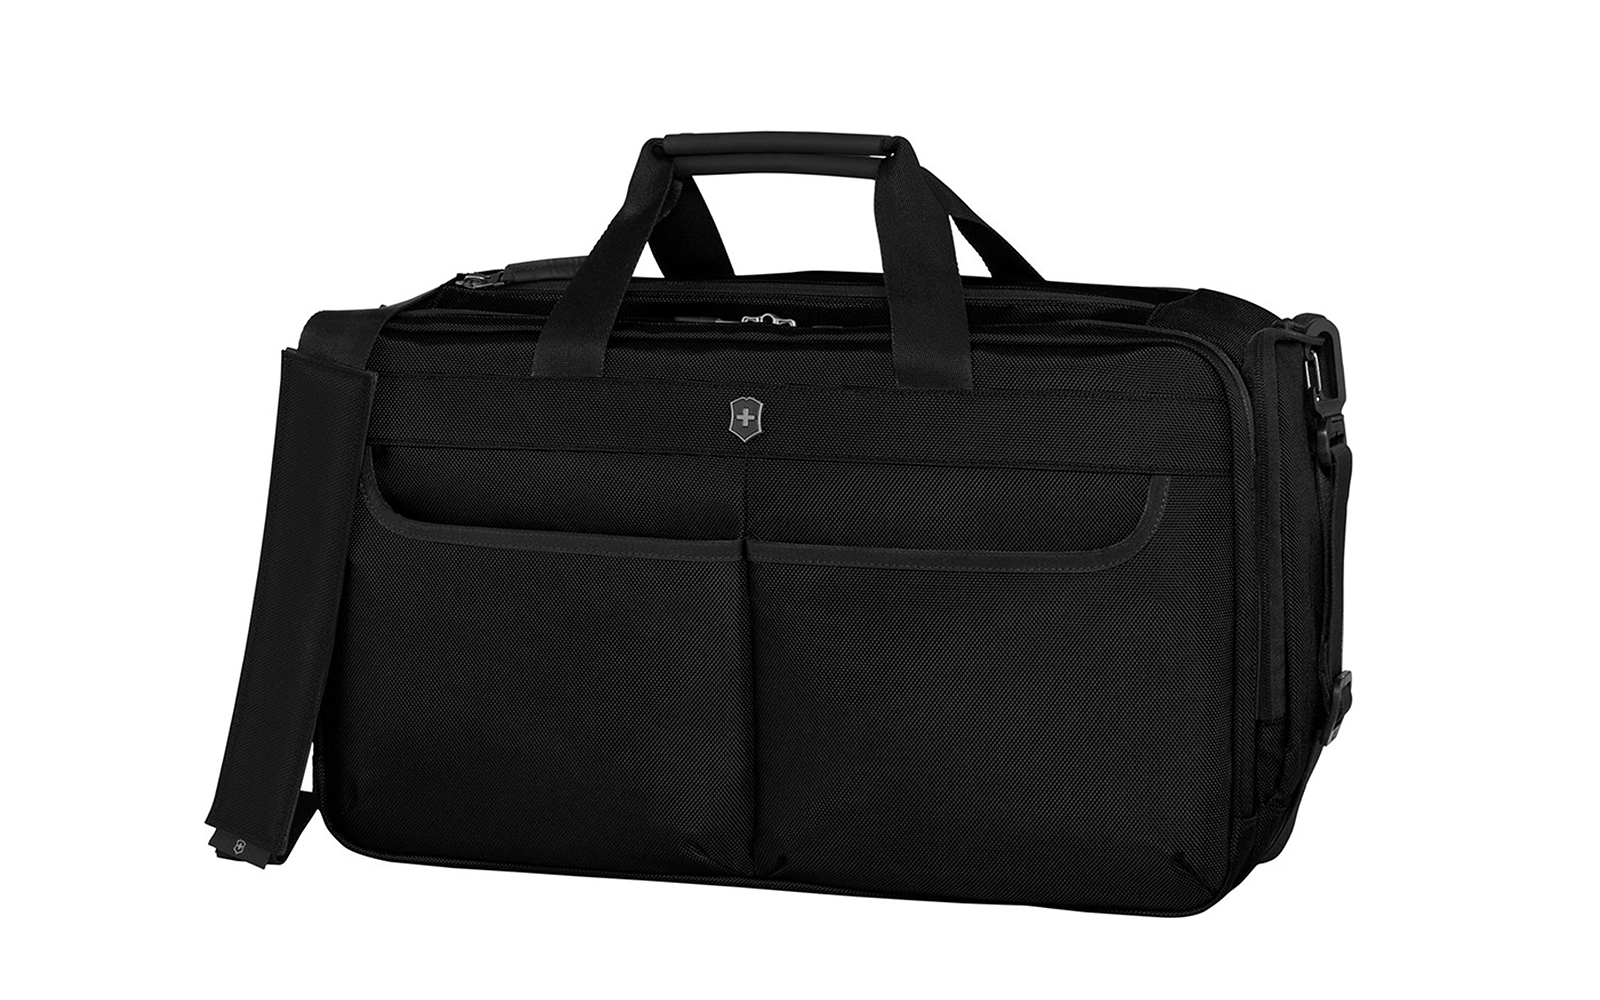 Victorinox Swiss Army WT 5.0 Duffel Bag